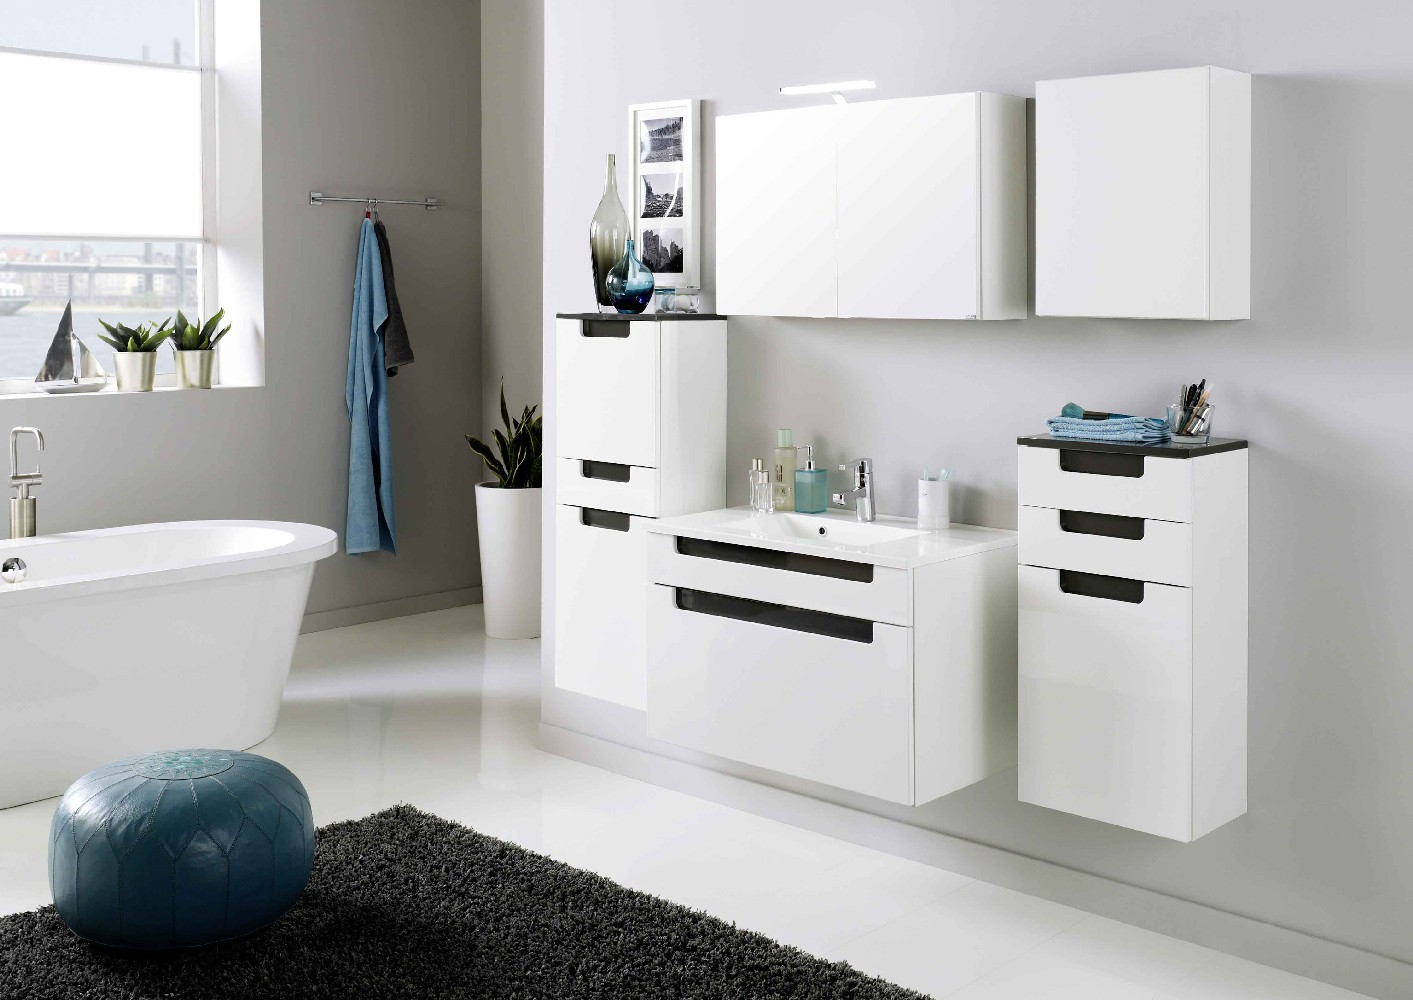 bad hochschrank siena 2 t rig 1 schublade 40 cm breit hochglanz wei anthrazit grau bad. Black Bedroom Furniture Sets. Home Design Ideas